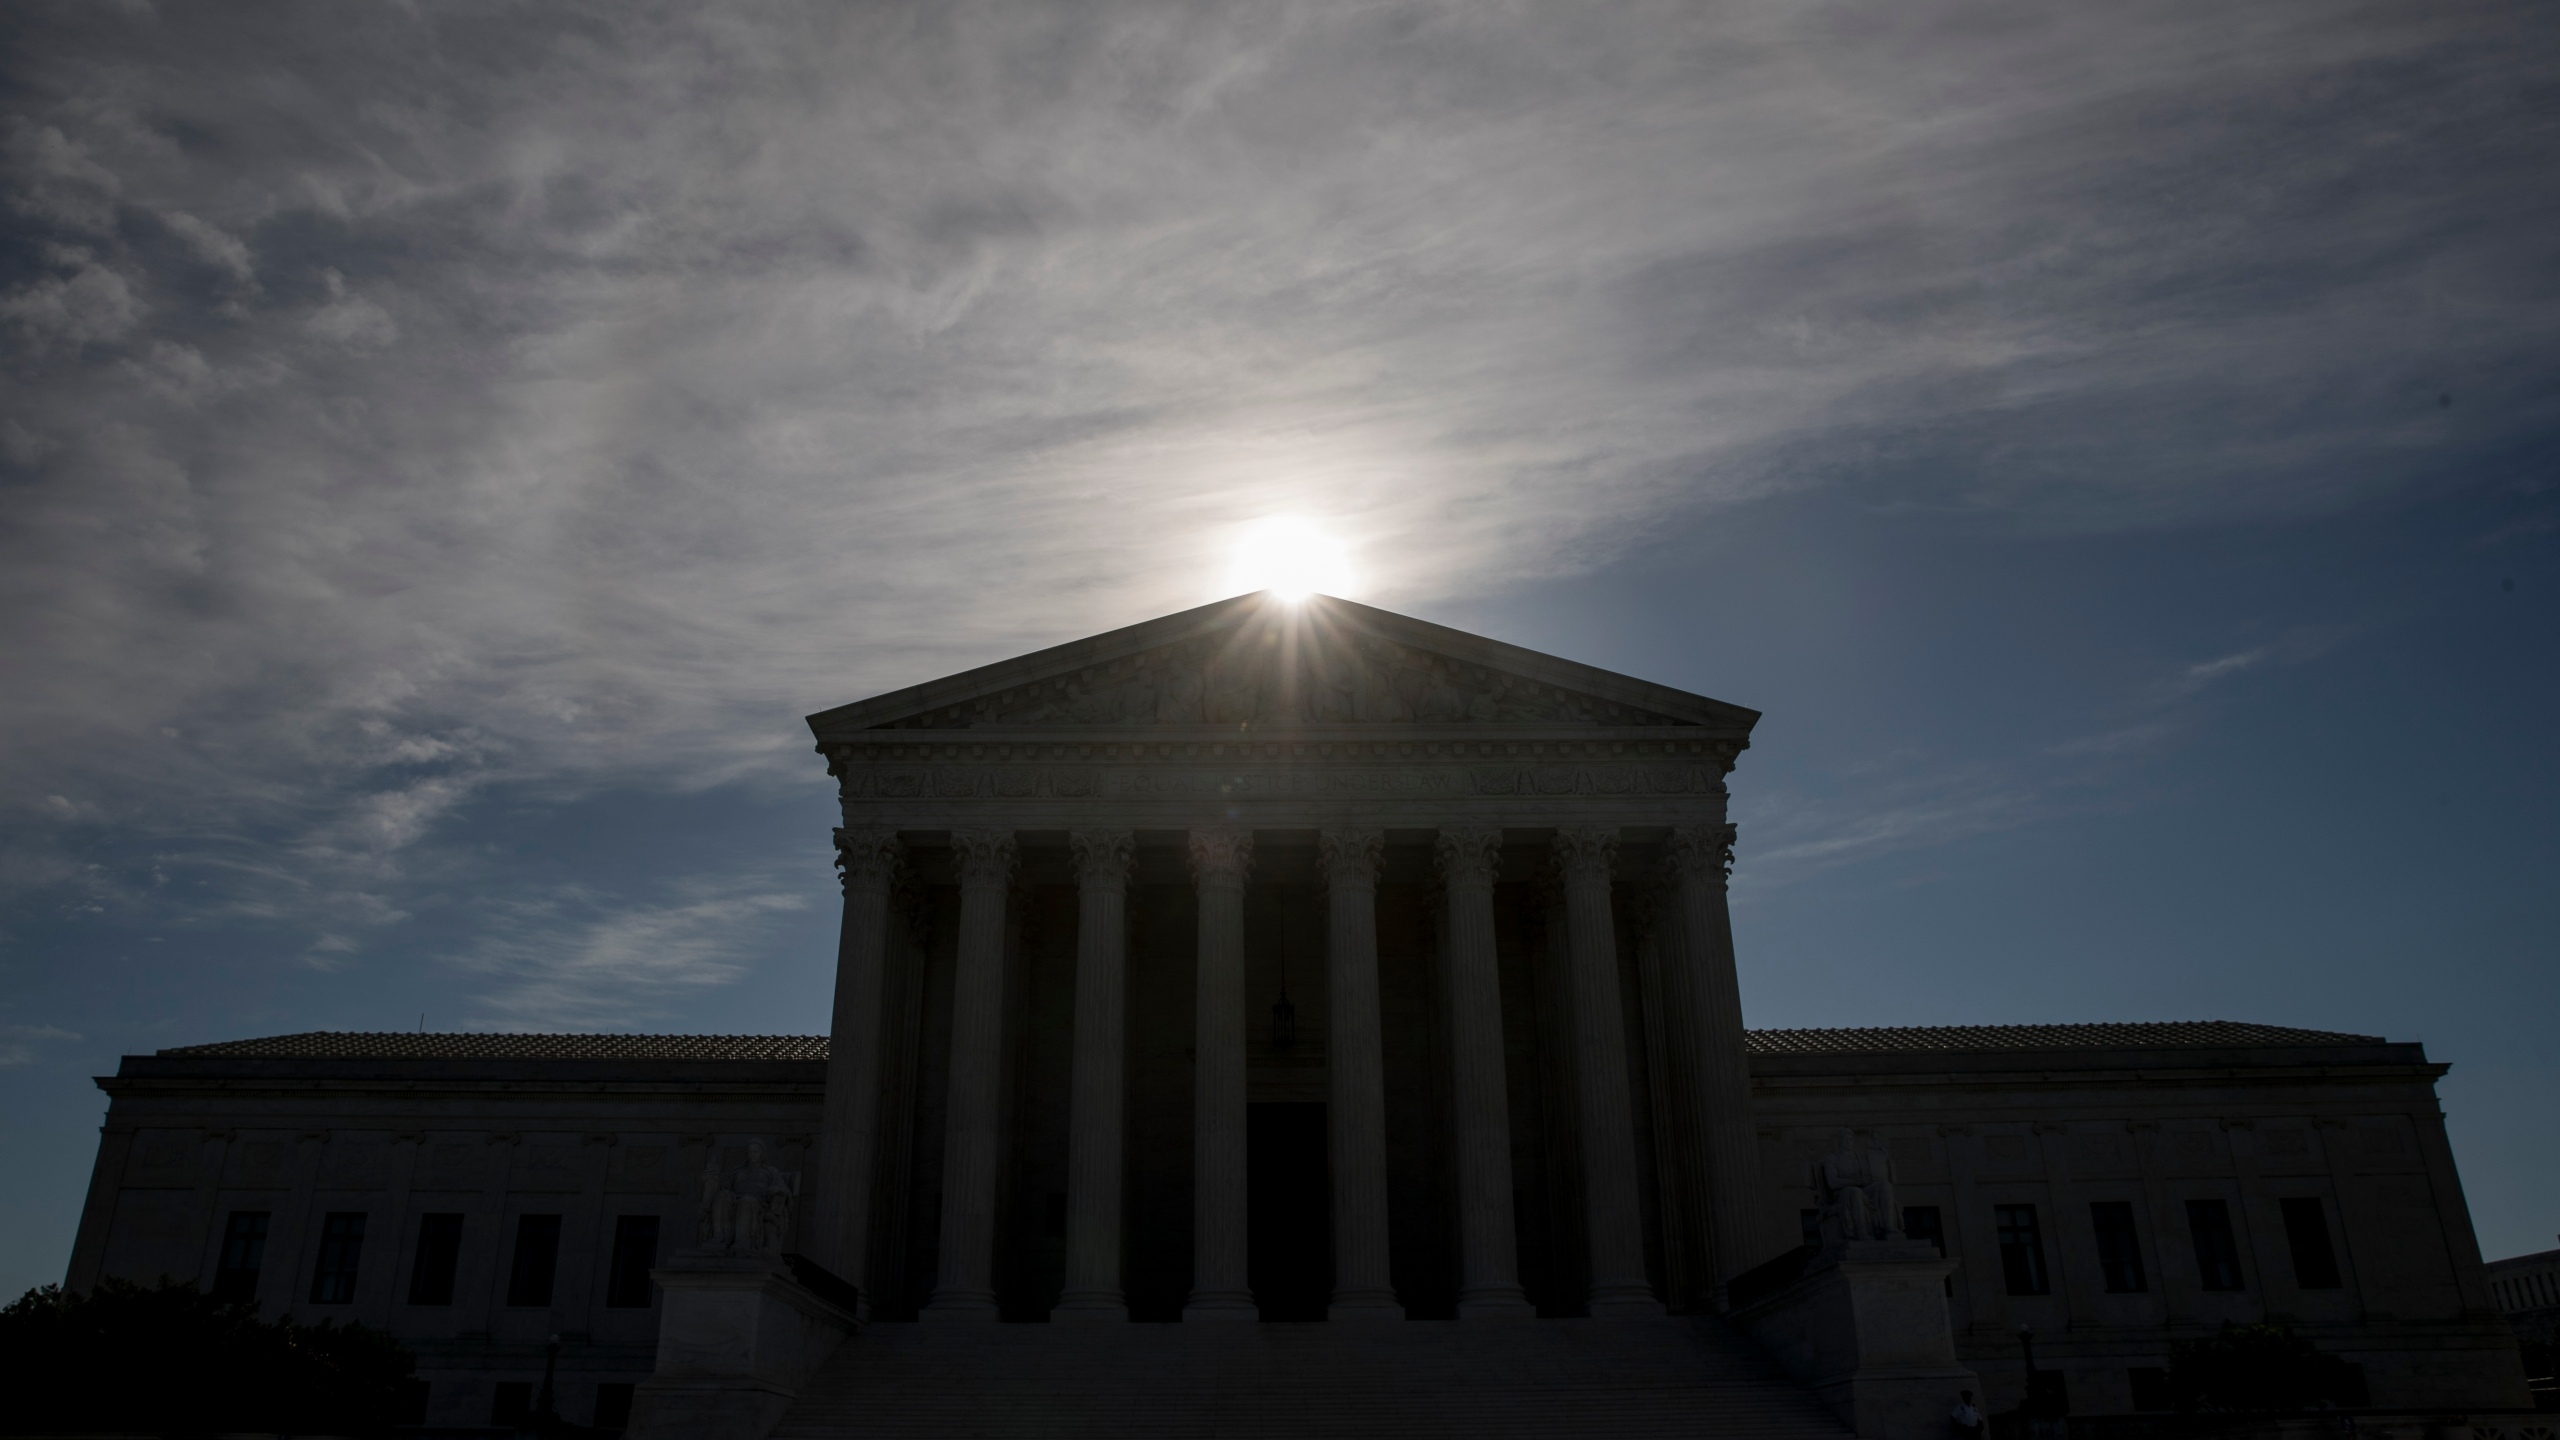 This May 4, 2020, file photo shows the Supreme Court building in Washington. (Andrew Harnik/AP Photo)